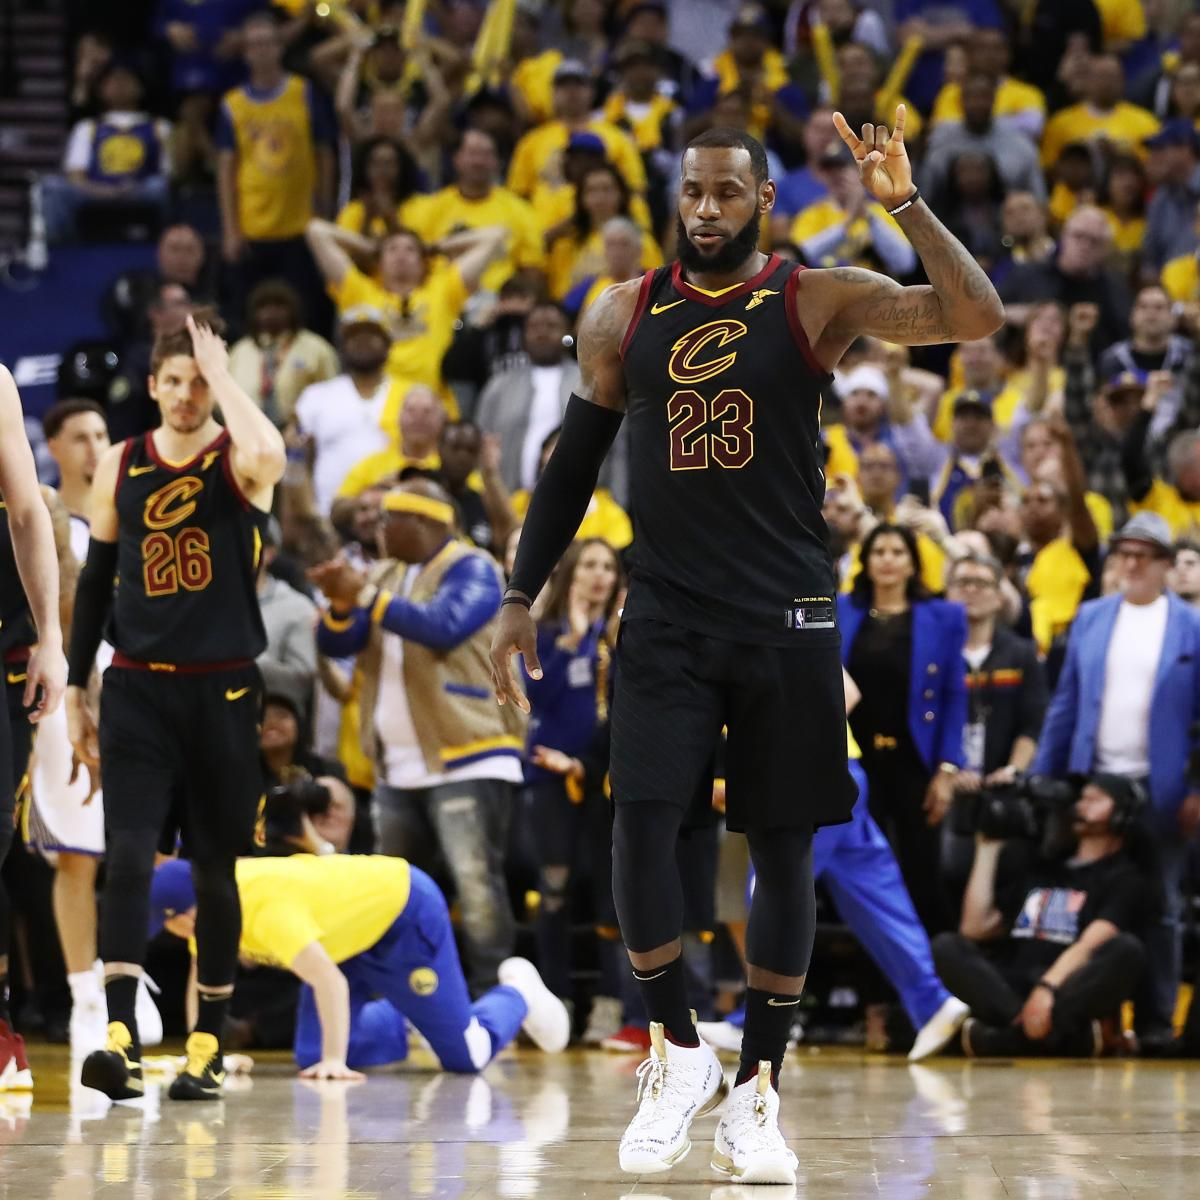 Warriors Vs Cavs Game 2 Live Stream Free Reddit: NBA Finals 2018: Cavaliers Vs. Warriors Game 2 TV Schedule